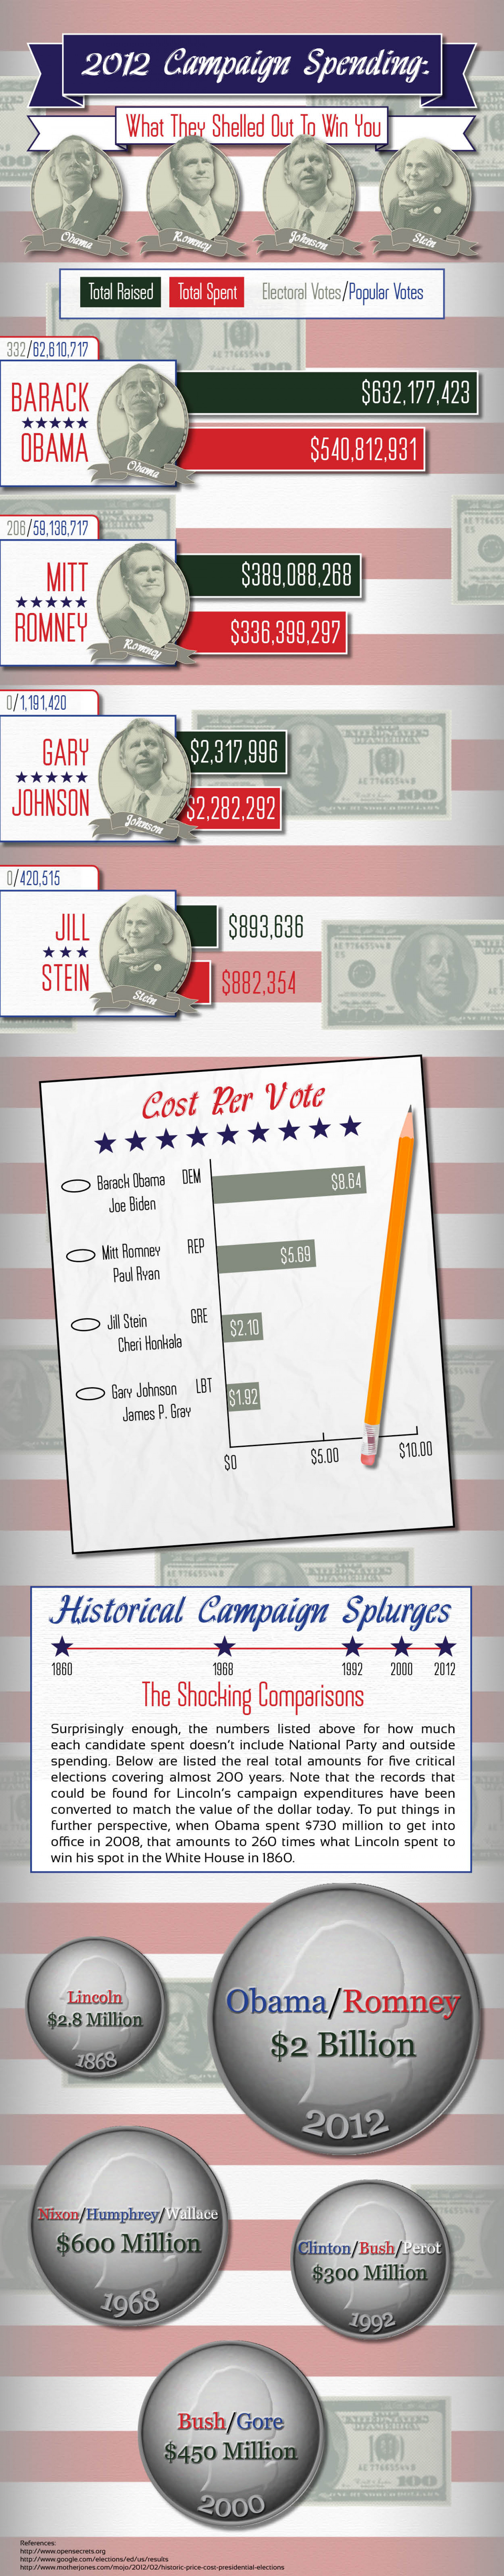 2012 Campaign Spending: What They Shelled Out To Win You Infographic